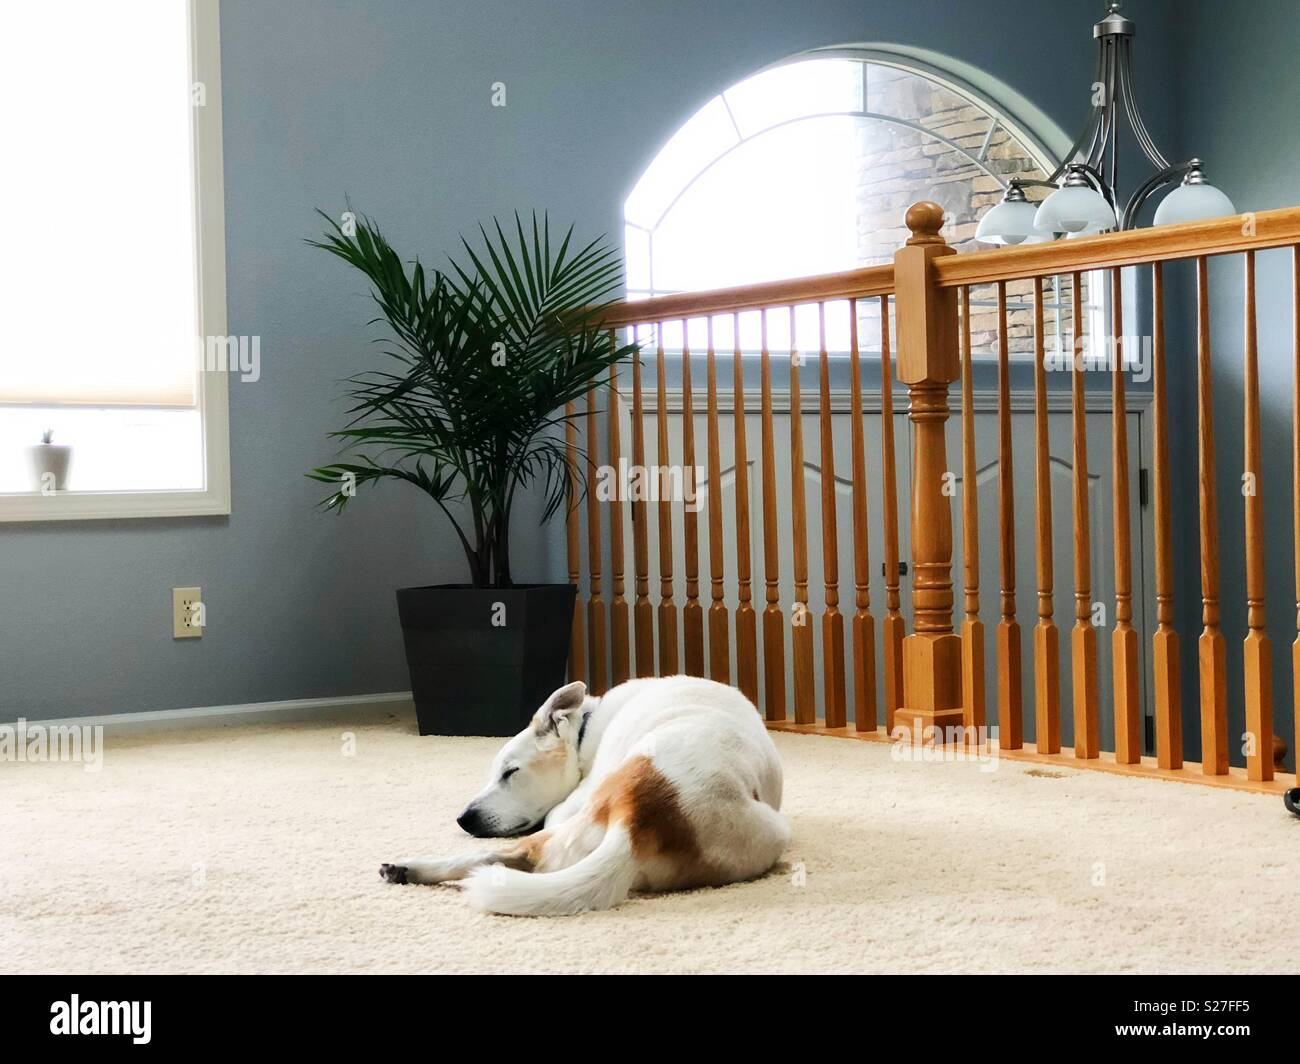 A dog sleeping on a carpet in a house. - Stock Image